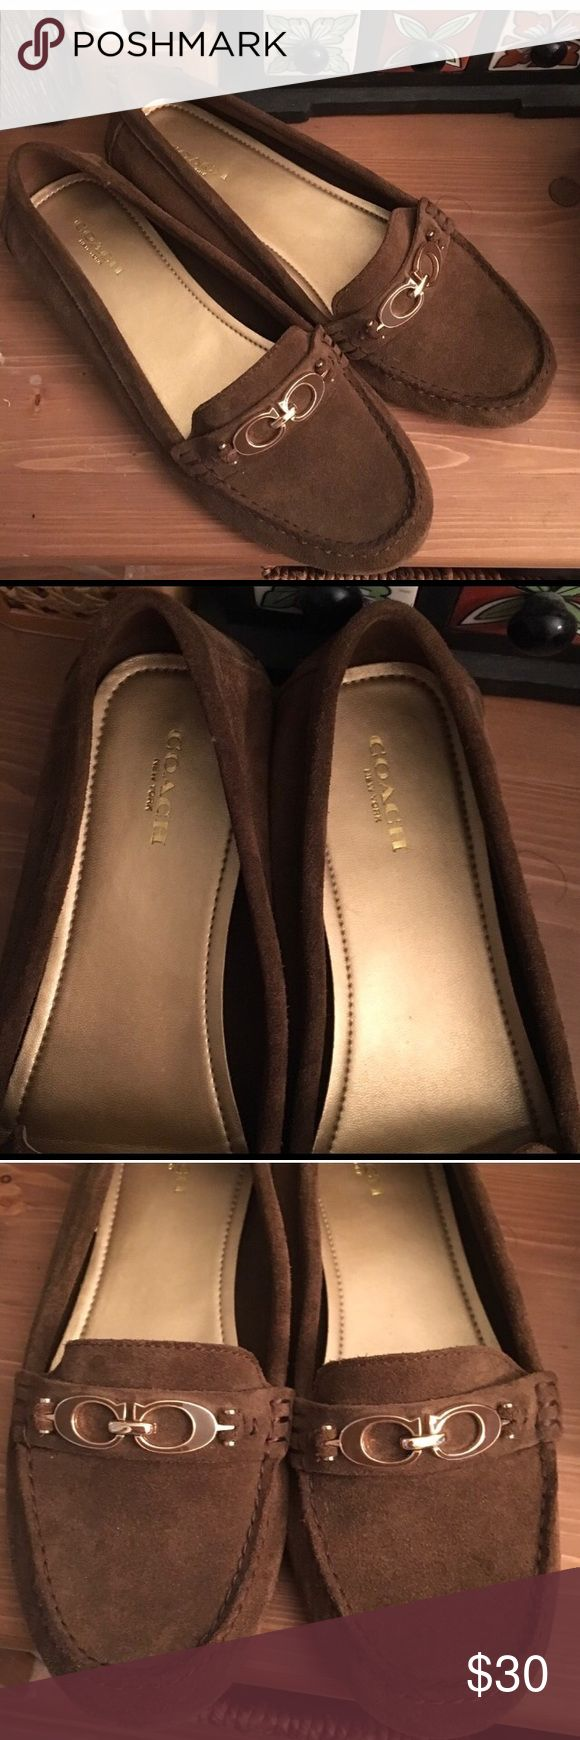 Coach Flats Coach flats. Brown suede with gold hardware detail.  Like new condition Shoes Flats & Loafers